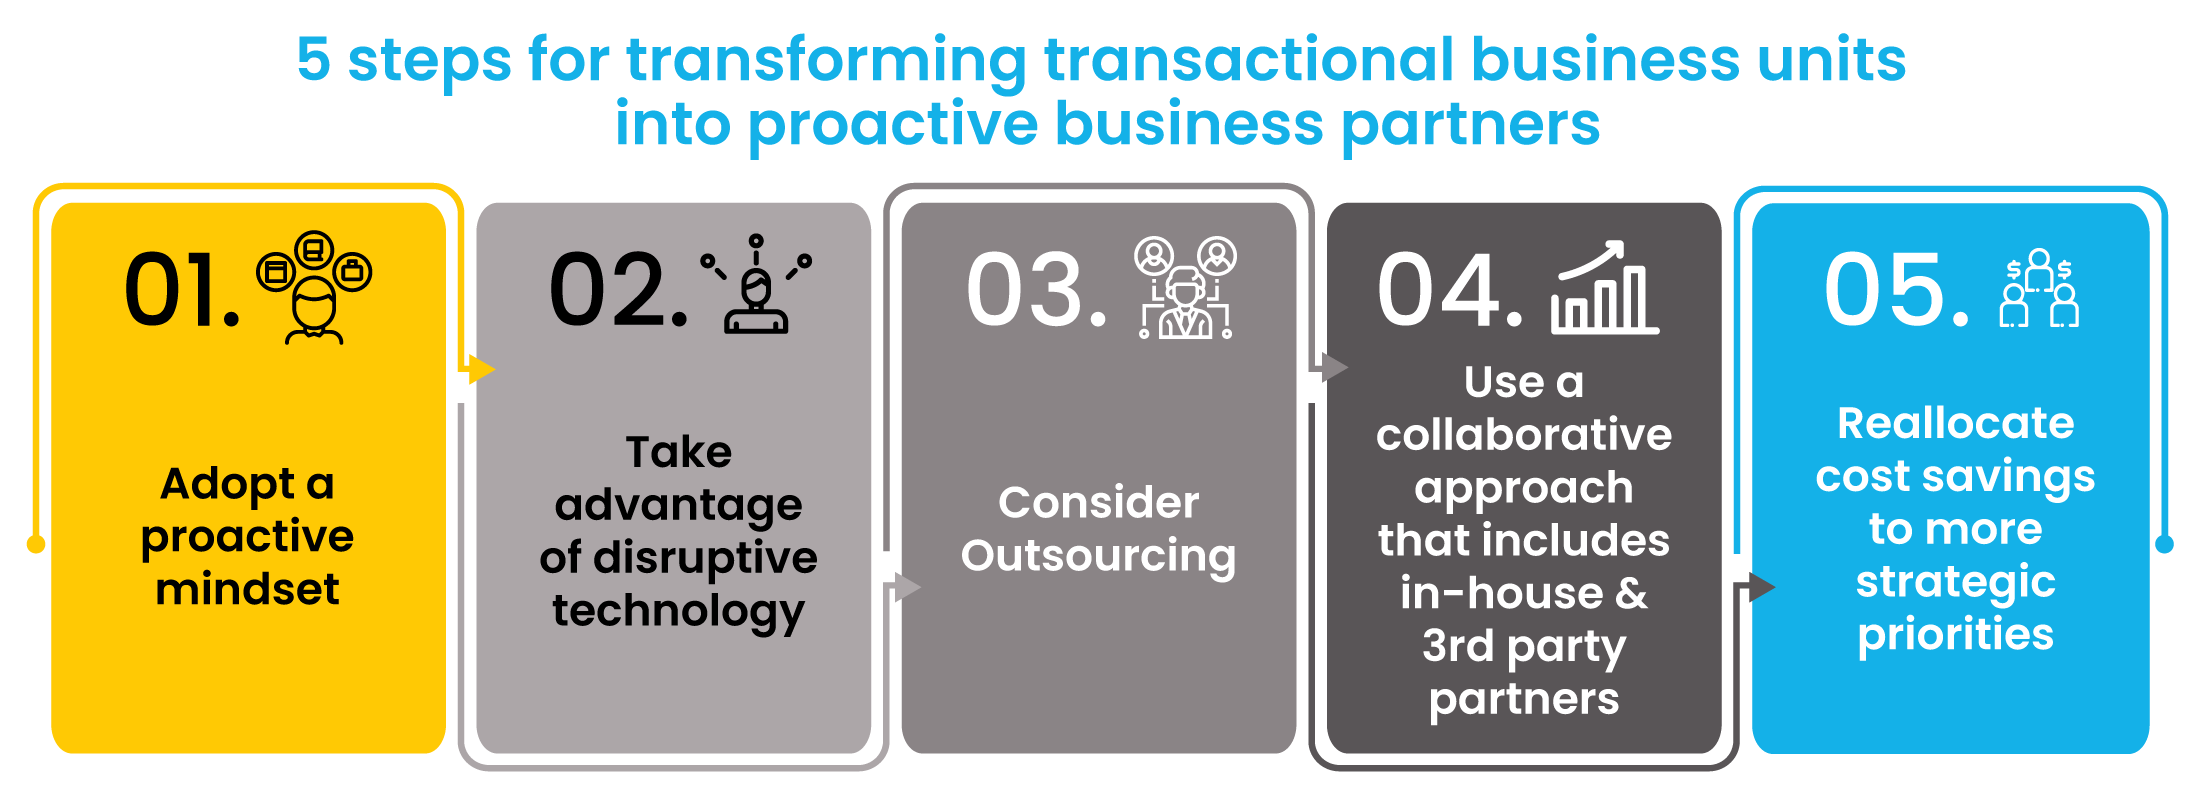 5 Business transformation strategies for transforming transactional units into proactive business partners you can implement